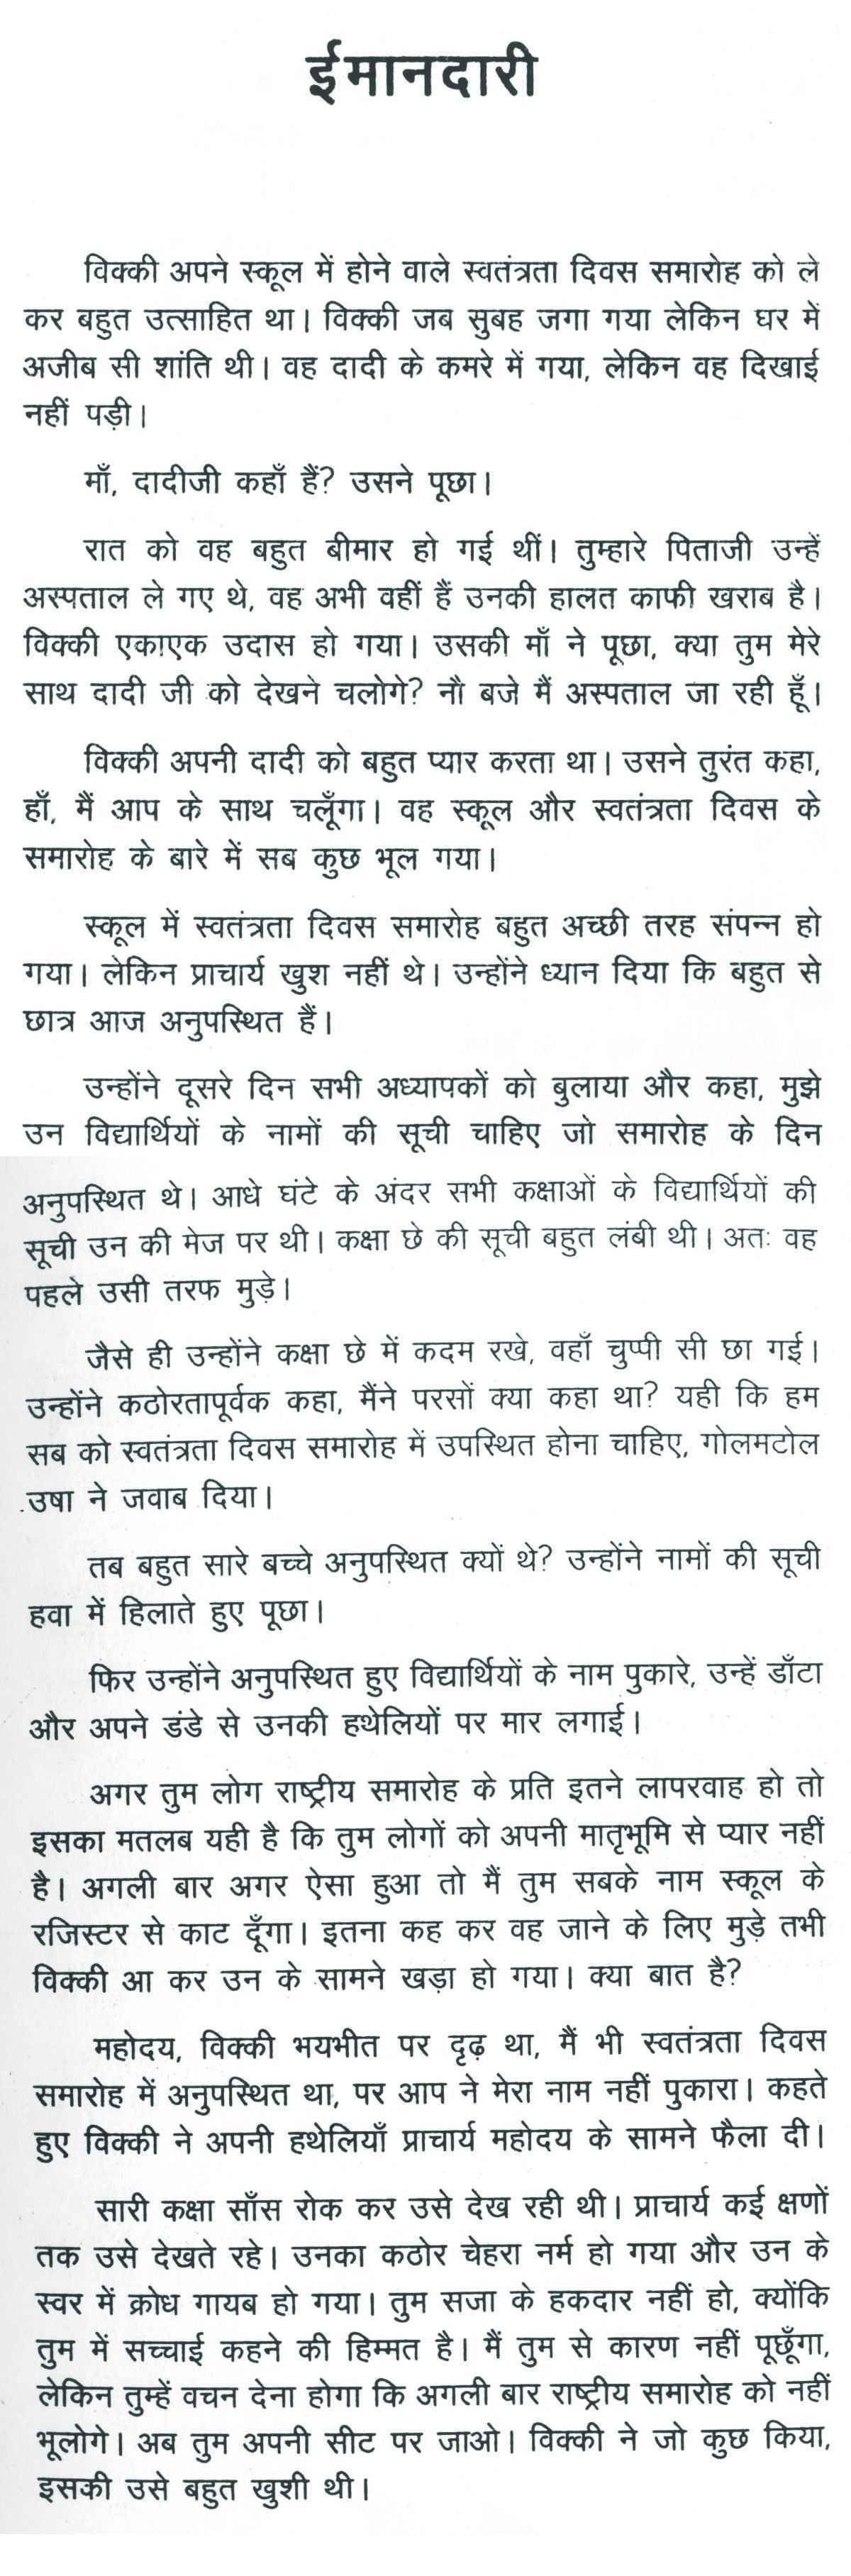 007 10037 Thumb Essay Of Honesty Astounding Is The Only Way To Success On Best Policy For Class 8 In Hindi Full